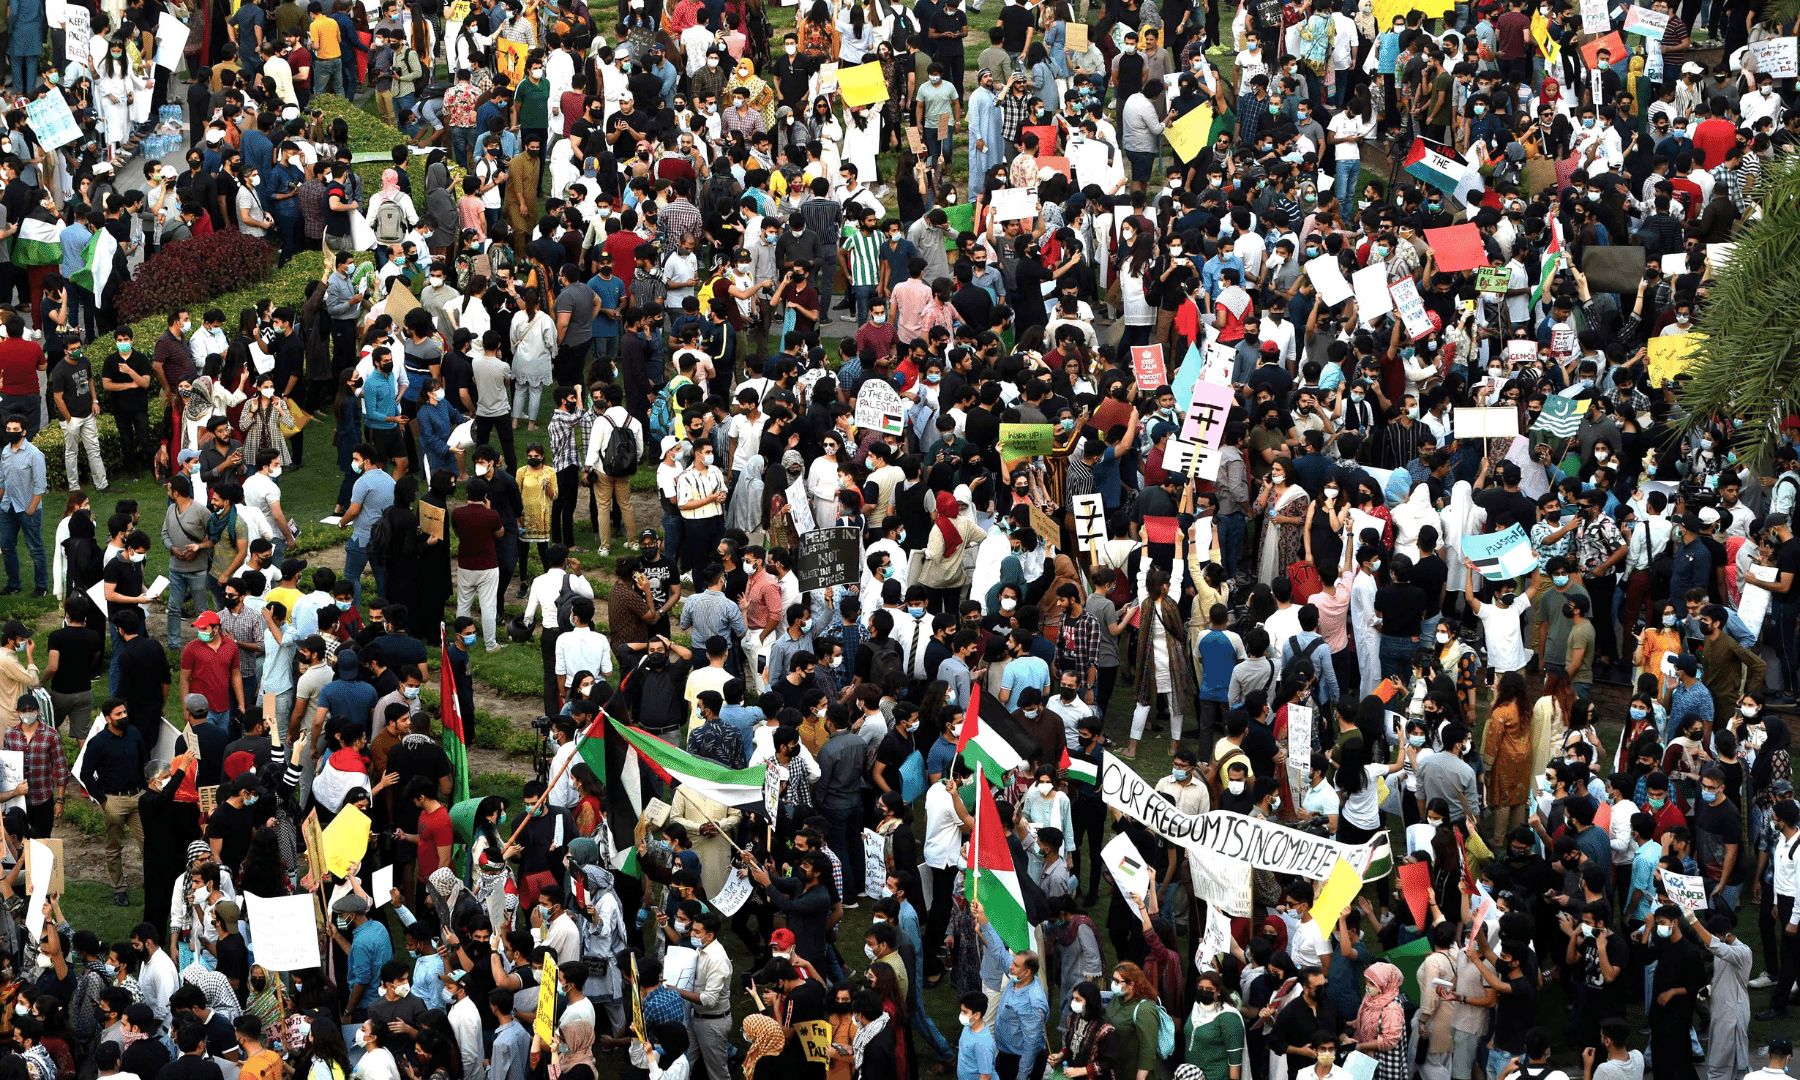 Protesters hold placards as they take part in a demonstration in support of Palestine during an anti-Israel protest rally in Lahore on Monday. — AFP